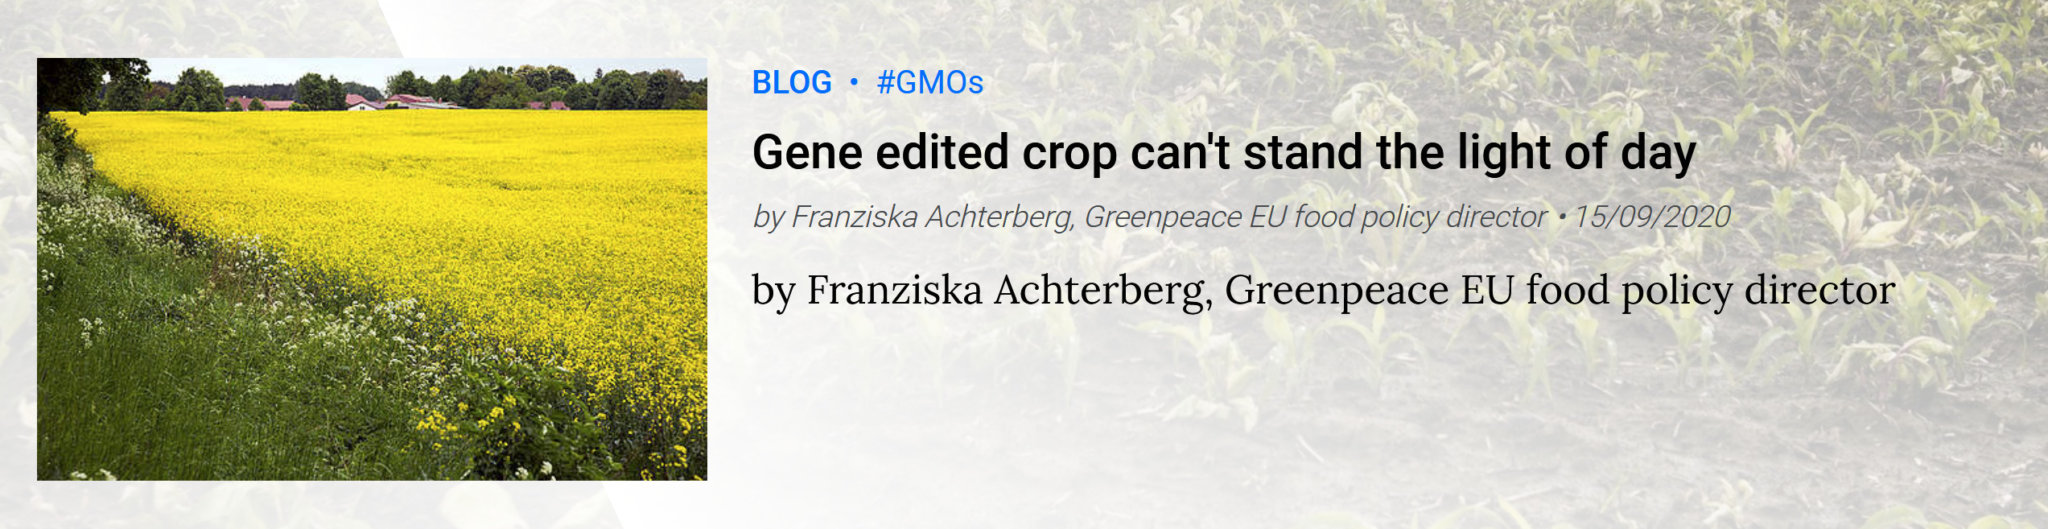 Viewpoint: Anti-GMO groups exploit COVID to block access to biotech crops